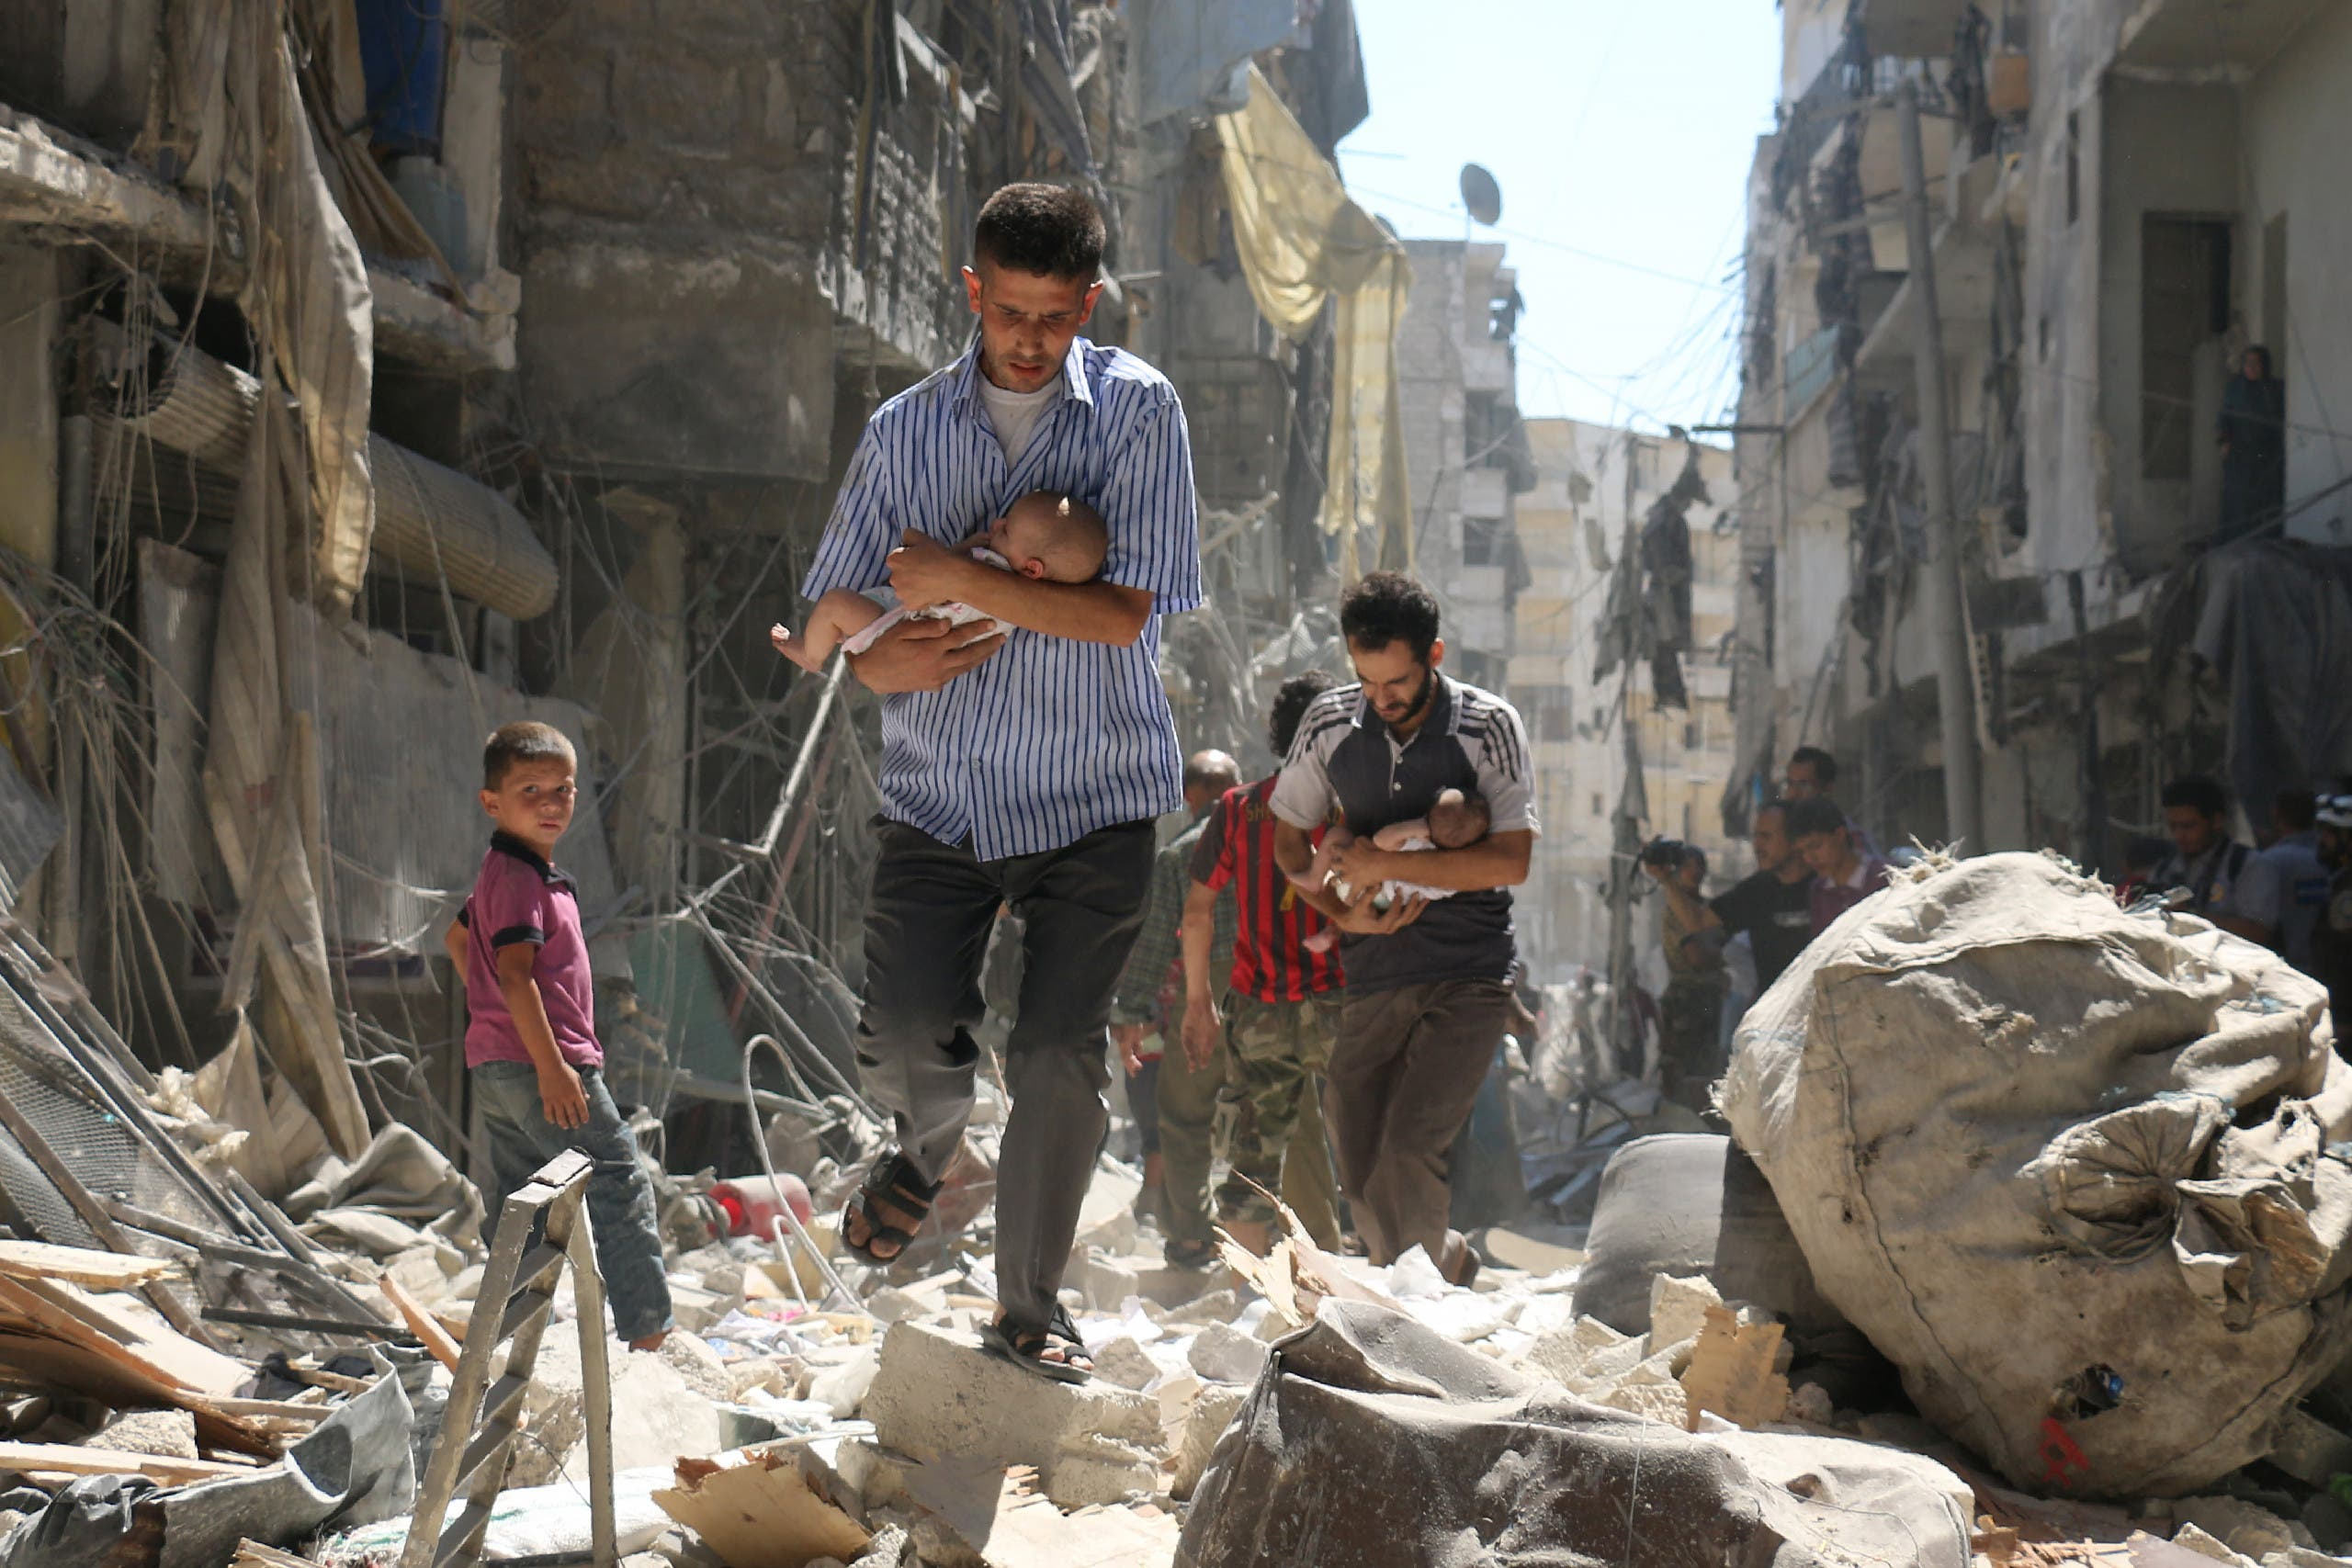 Syrian men carrying babies make their way through the rubble of destroyed buildings following a reported air strike on the rebel-held Salihin neighbourhood of the northern city of Aleppo, on September 11, 2016. Air strikes have killed dozens in rebel-held parts of Syria as the opposition considers whether to join a US-Russia truce deal due to take effect on September 12. AMEER ALHALBI / AFP